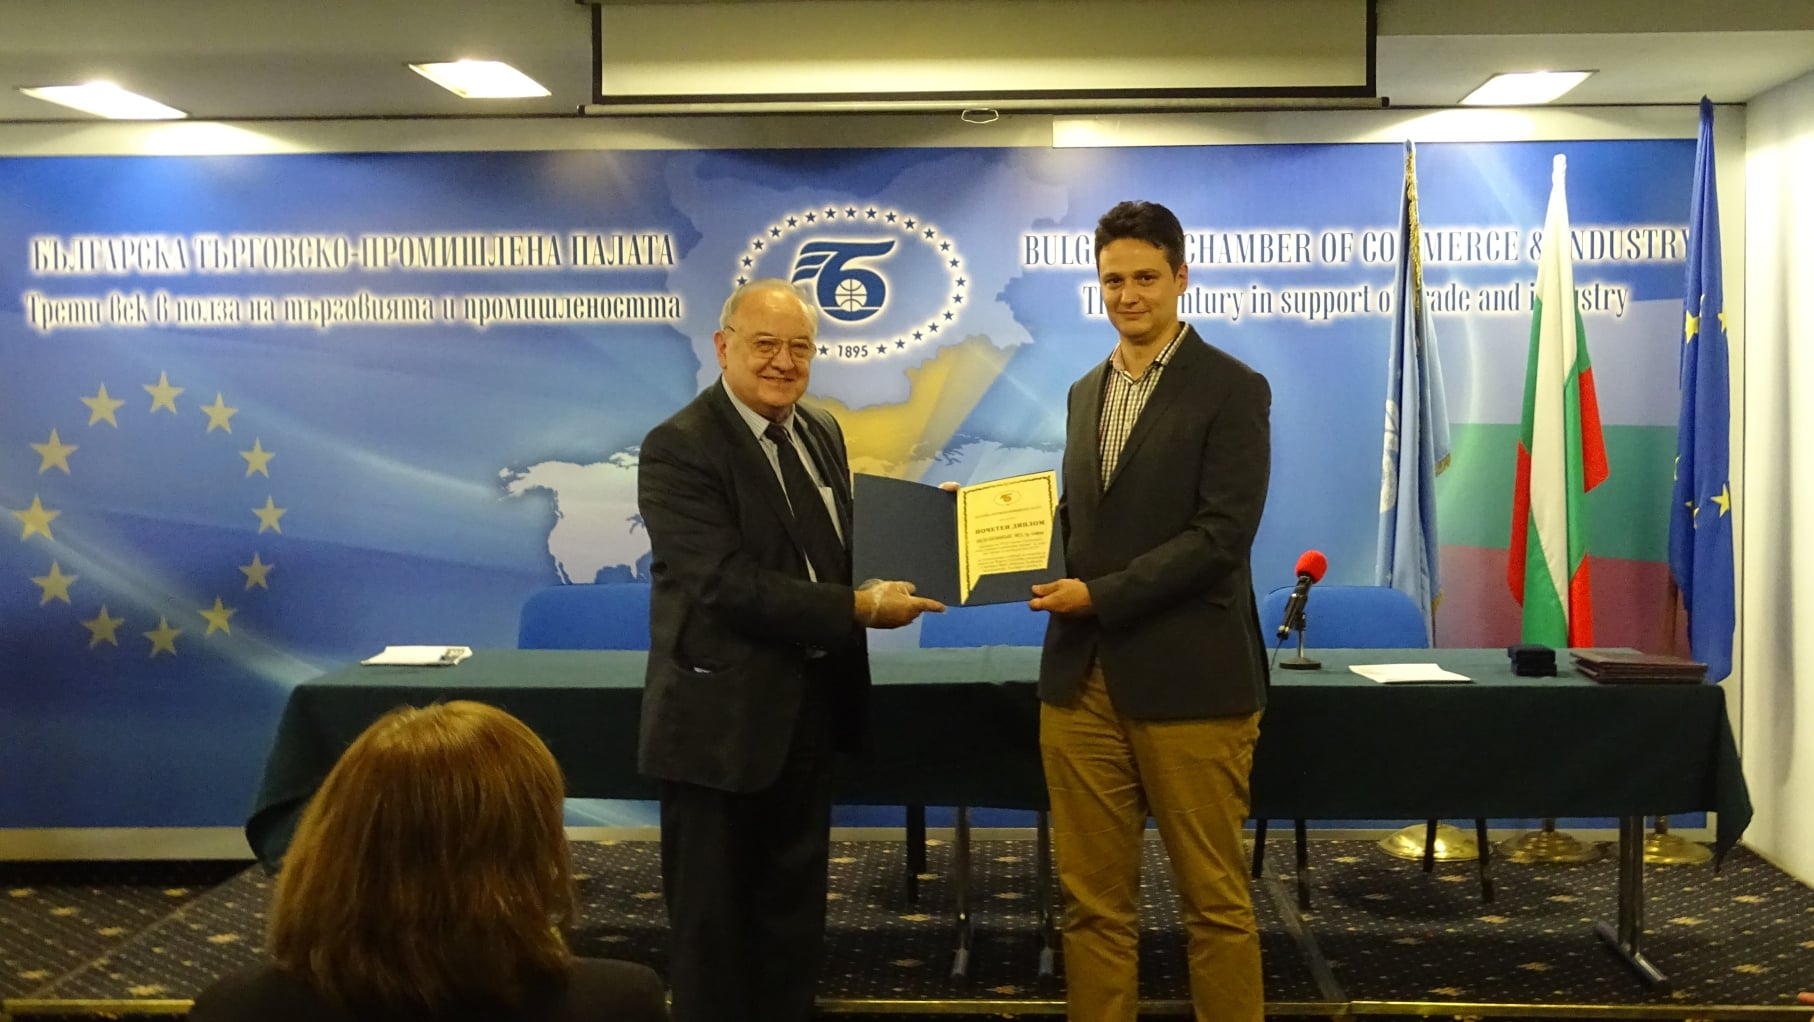 ONDO recognized with a Most Innovative Company award by the Bulgarian Chamber of Commerce and Industry